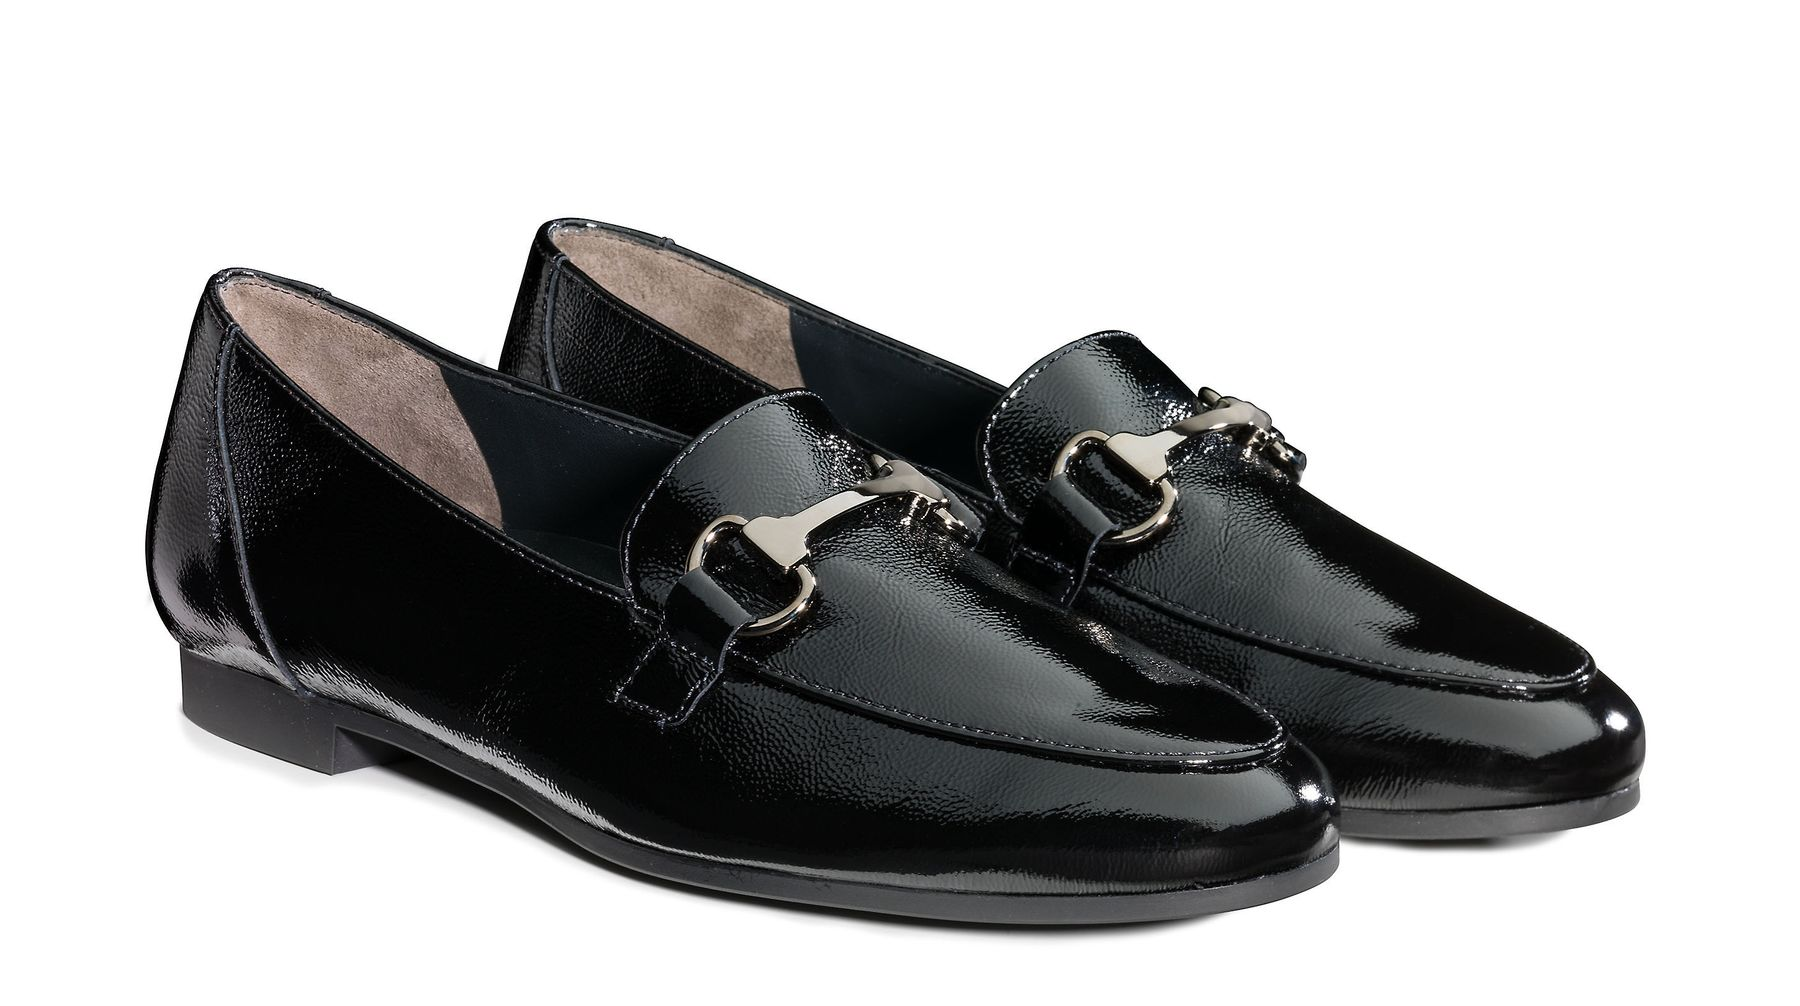 official latest design 2018 shoes Exclusive loafers in black patent leather - Paul Green